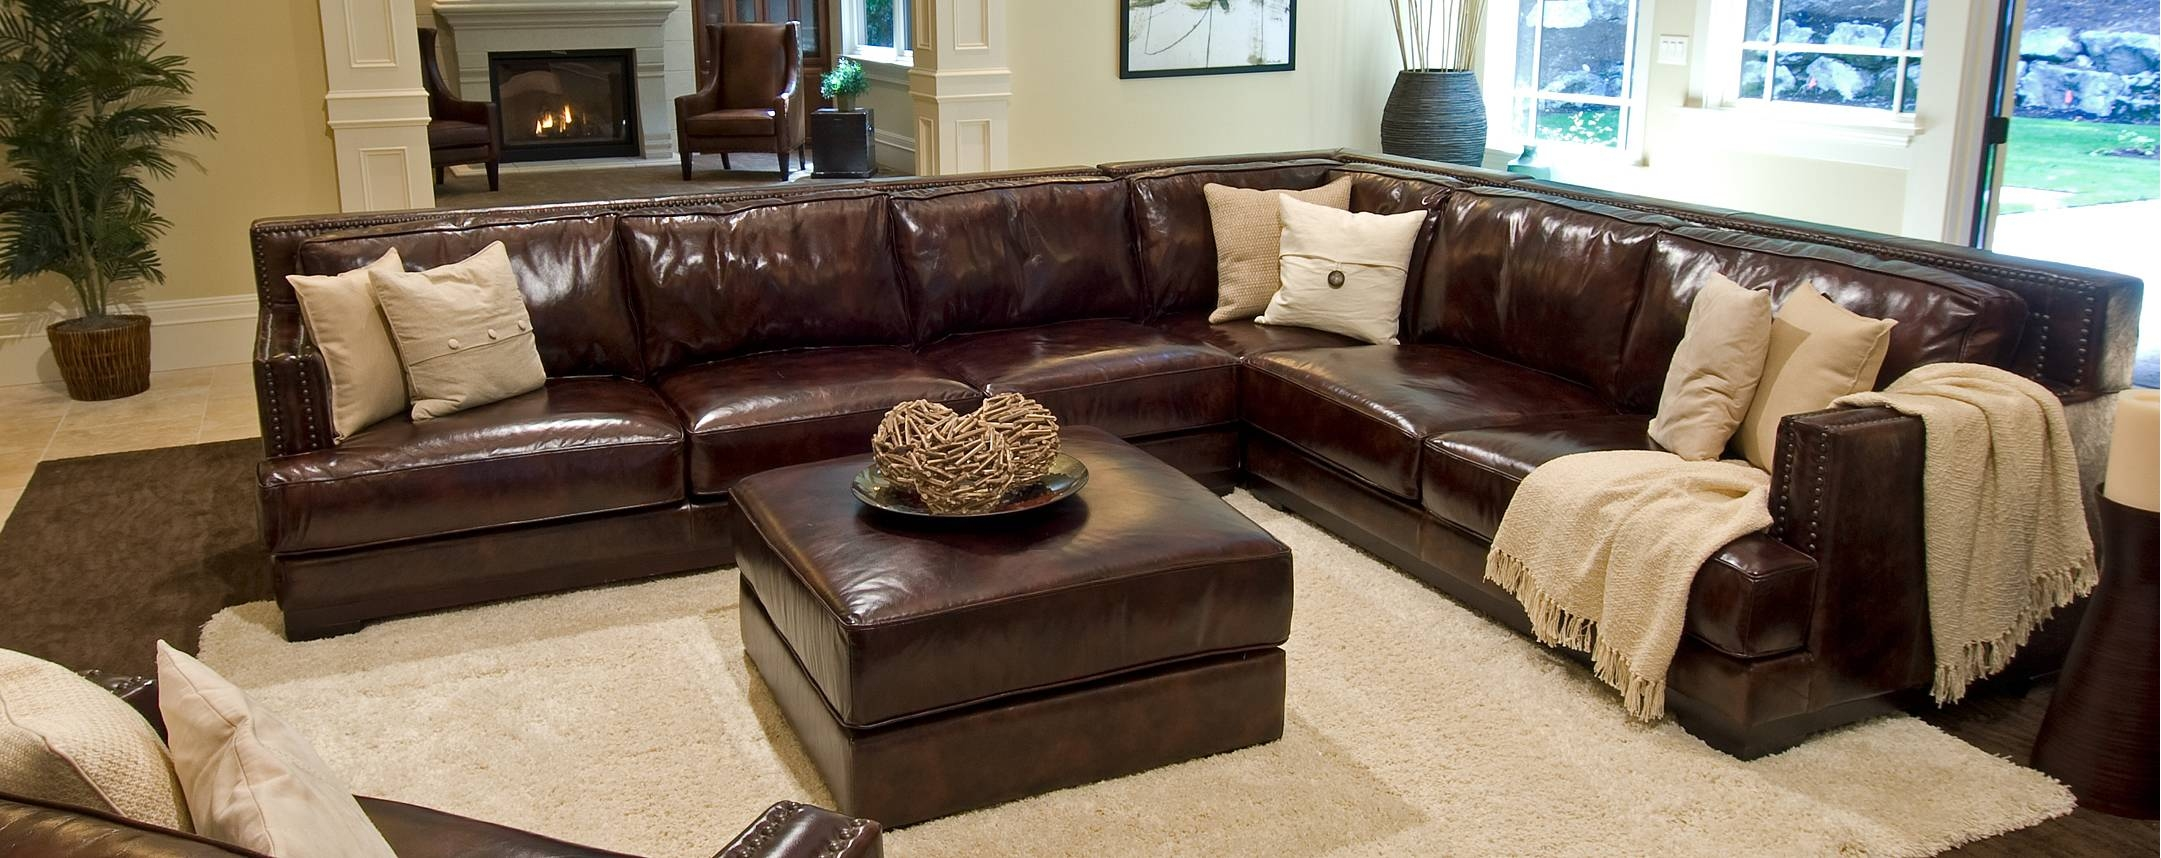 Good Large Sectional Leather Sofas 93 In Jennifer Sofas And pertaining to Jennifer Sofas And Sectionals (Image 9 of 15)